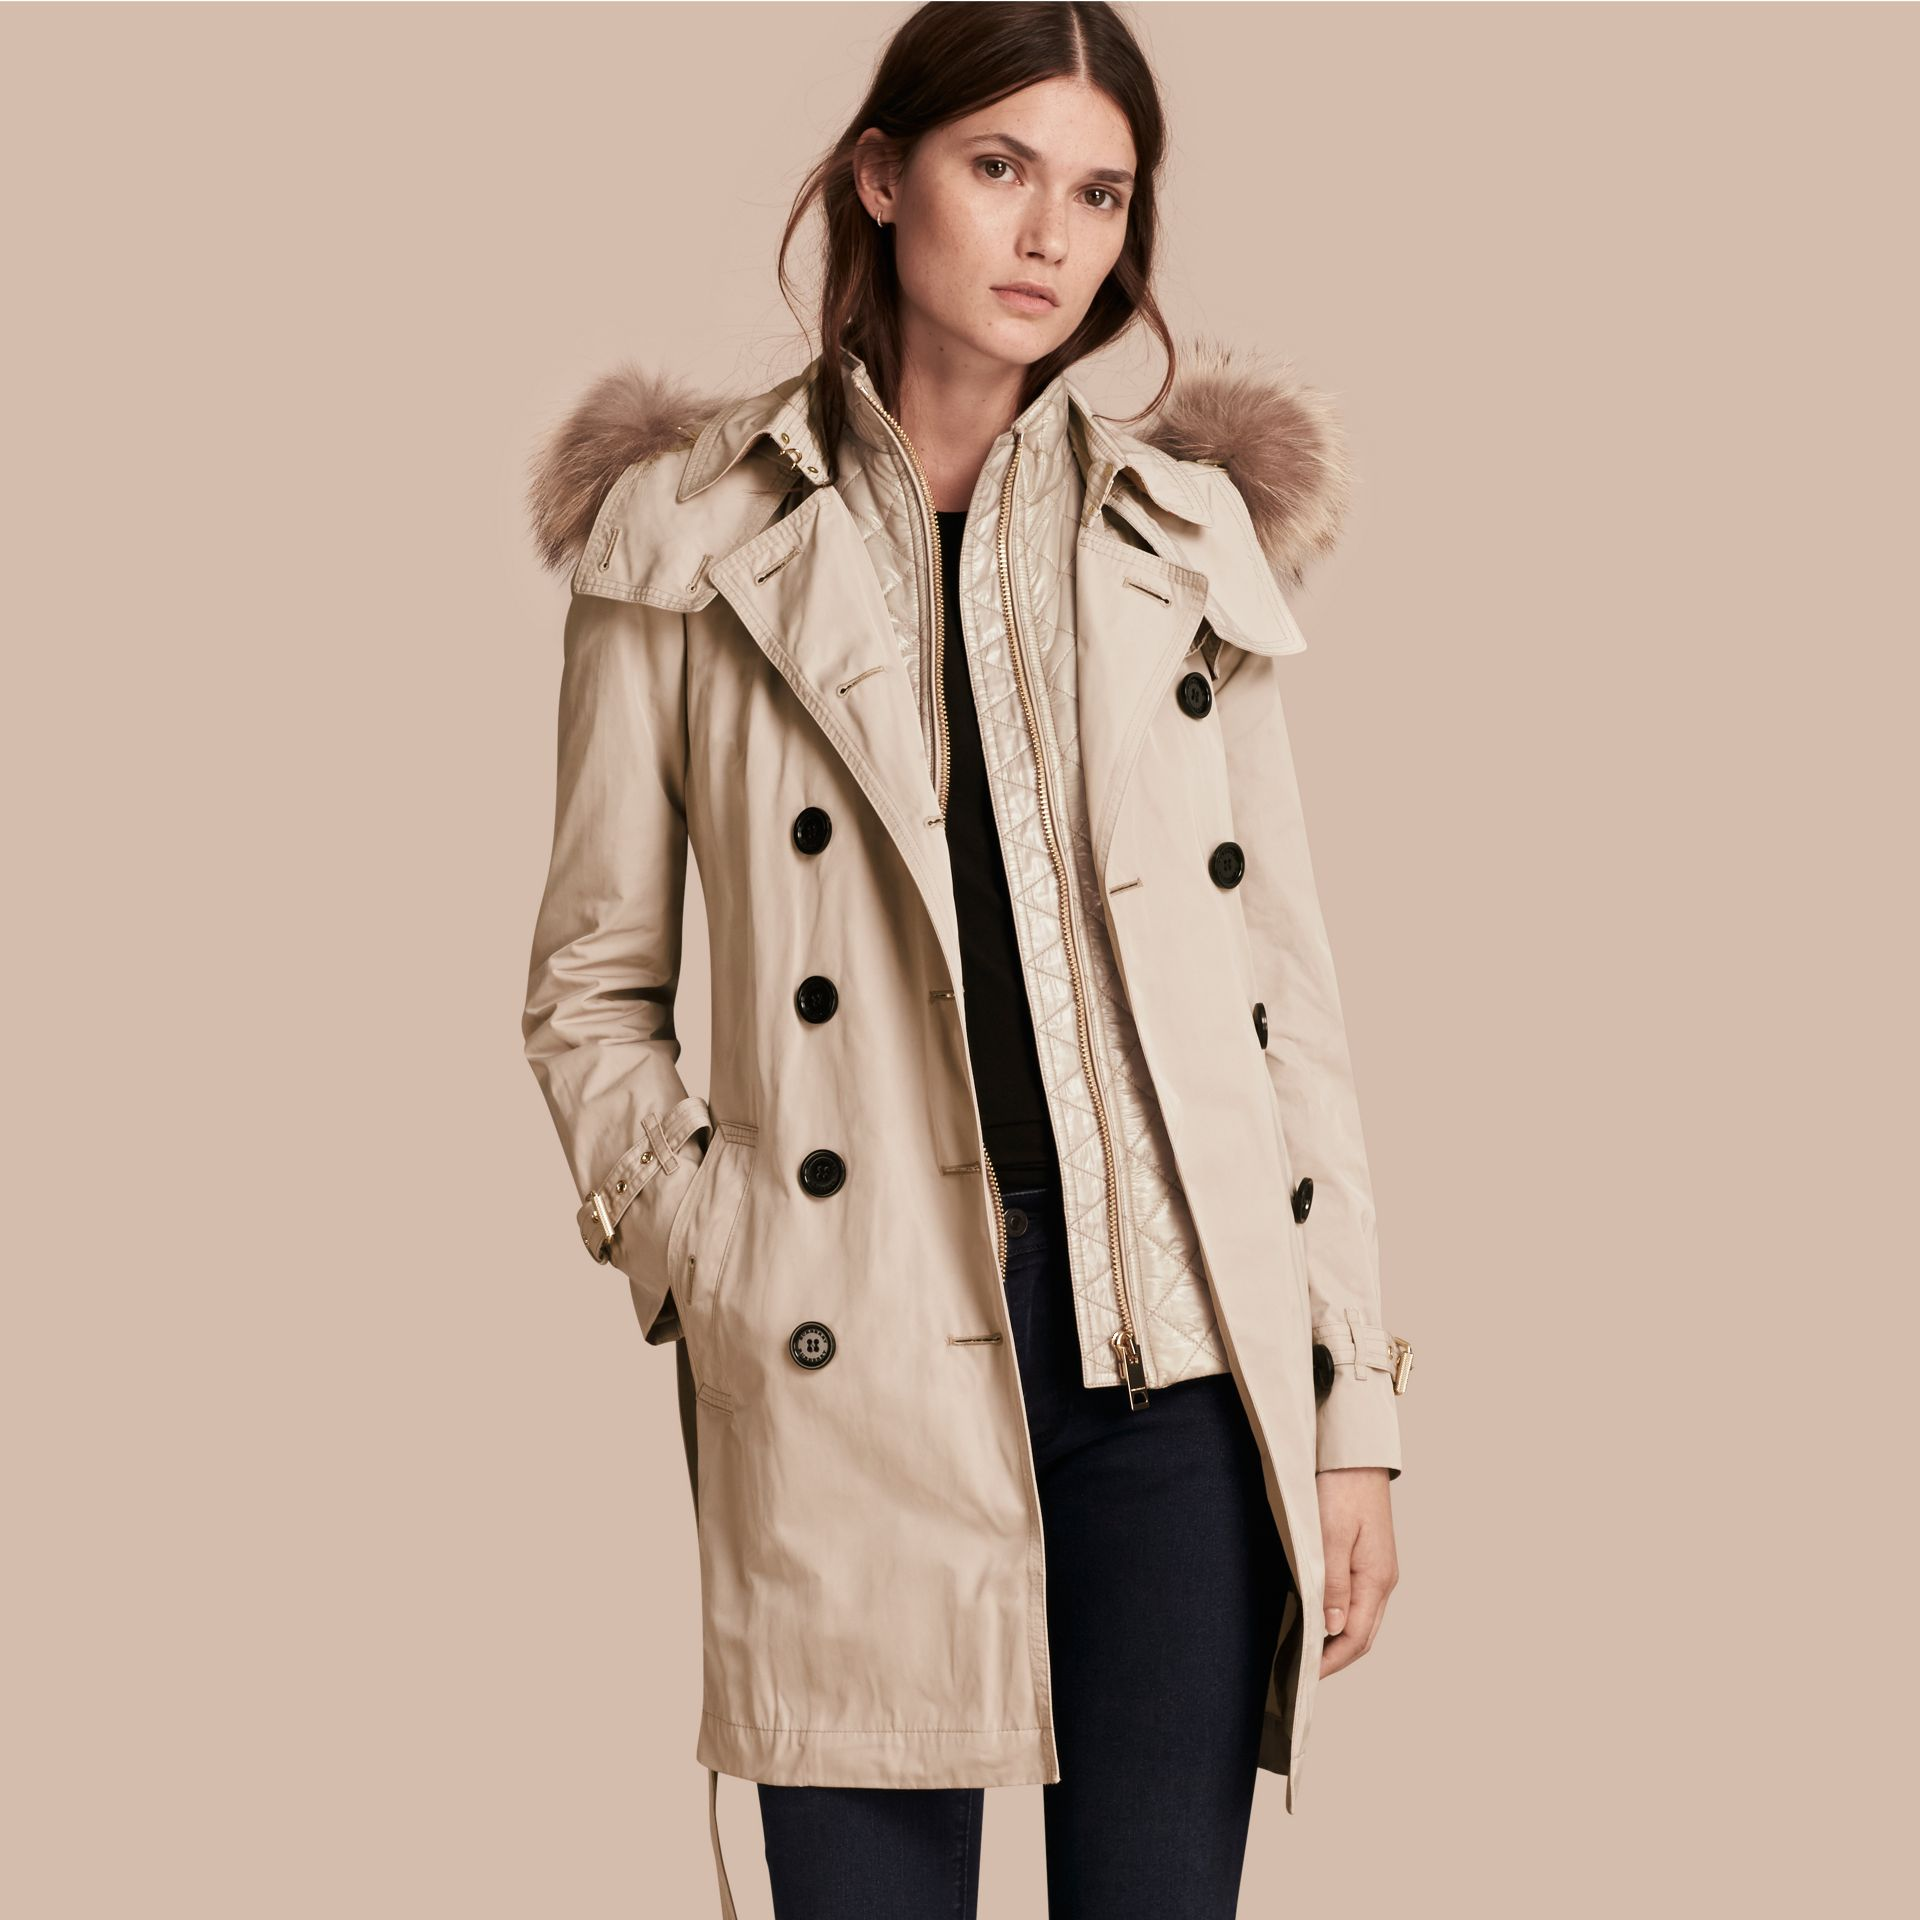 Stone Raccoon Fur Trim Hood Trench Coat with Gilet - gallery image 1